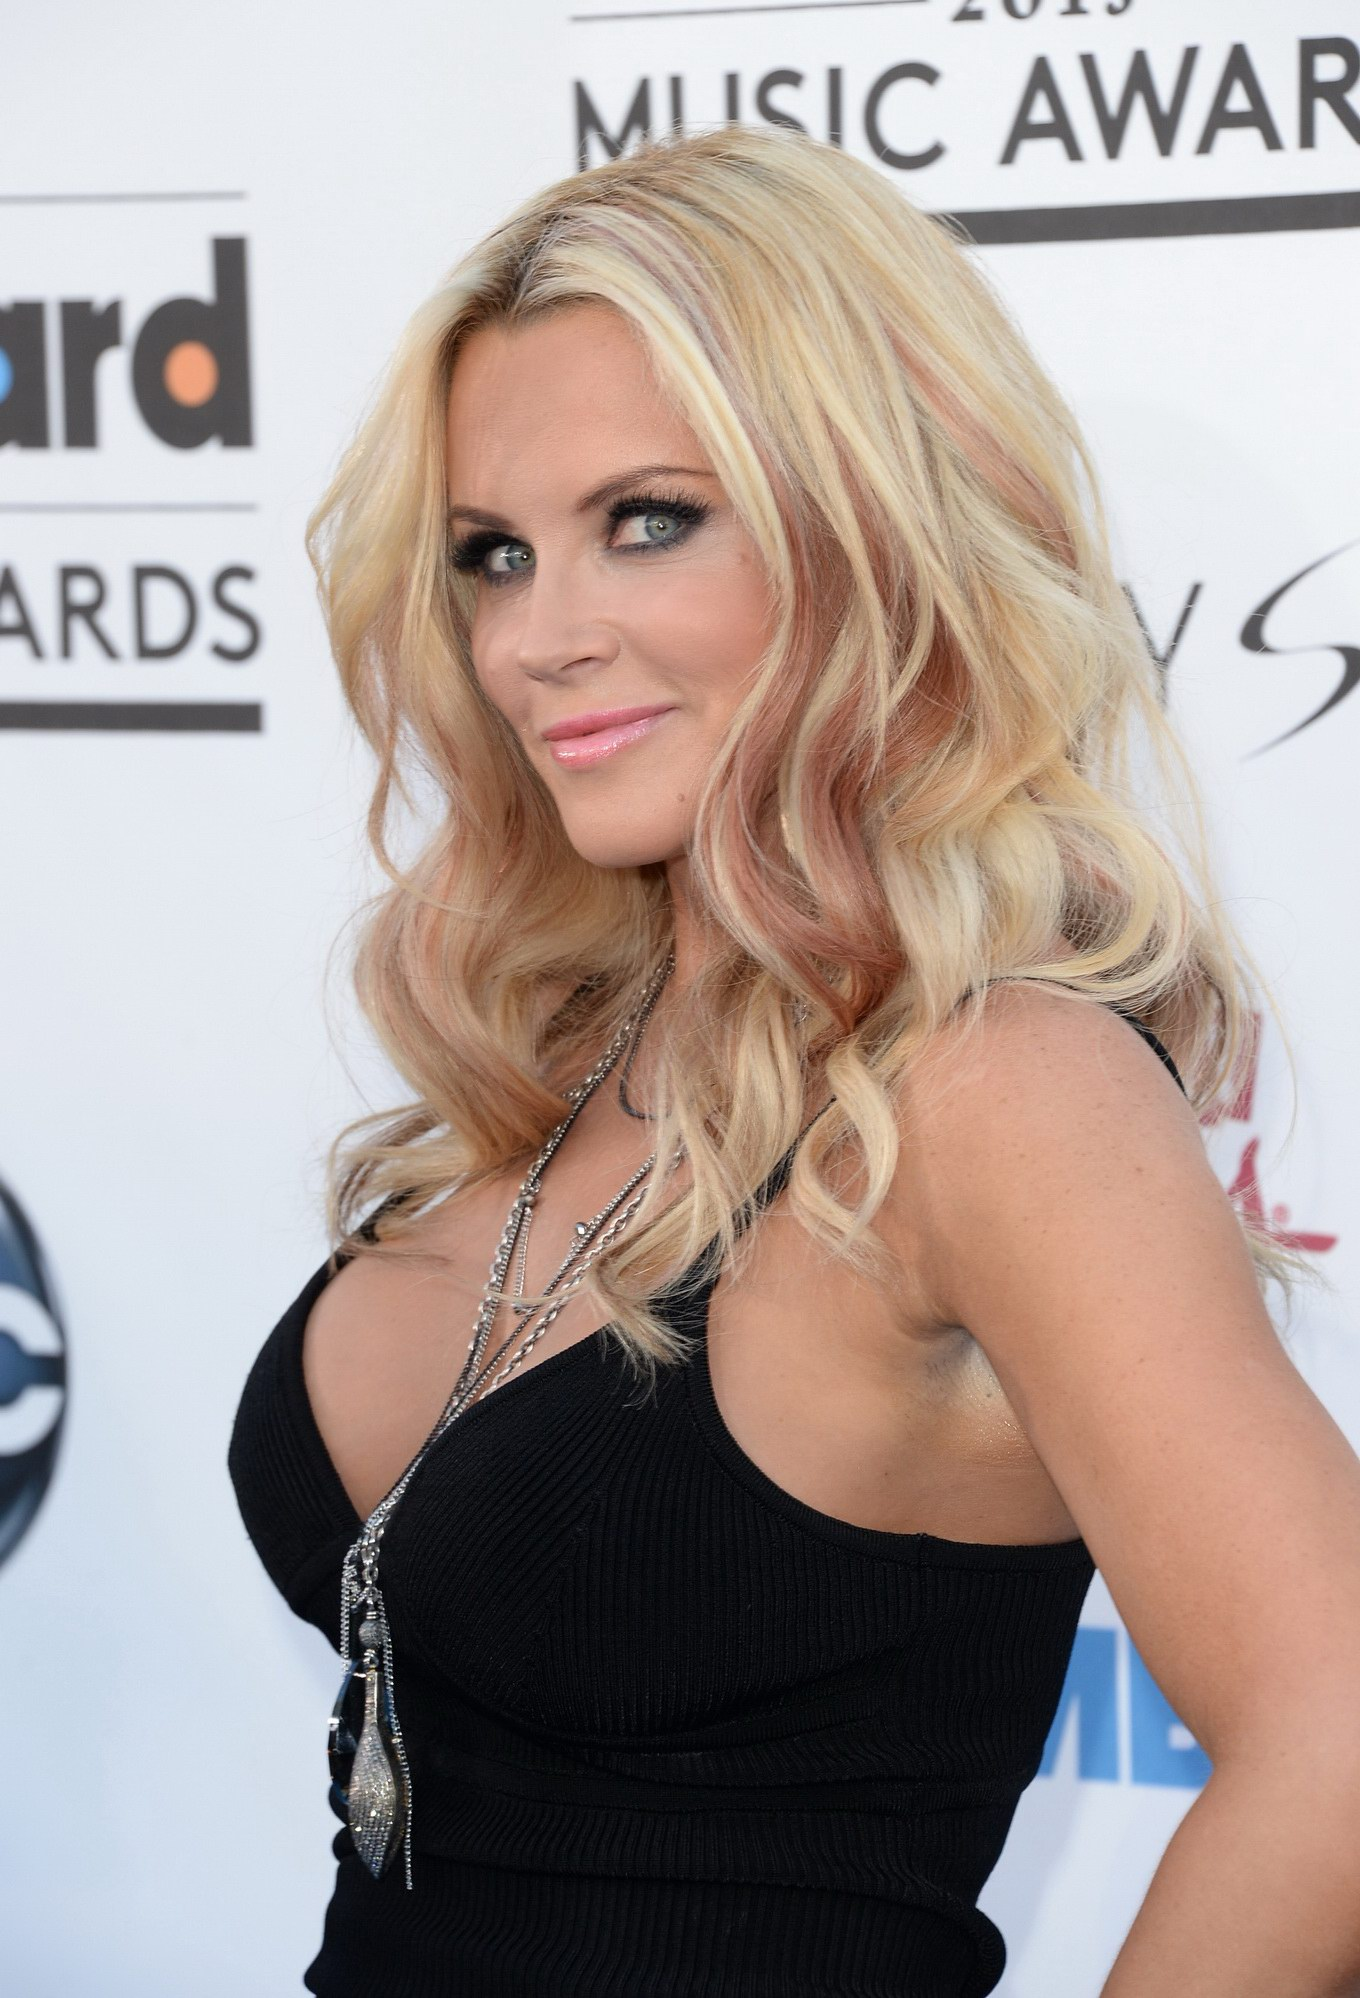 Agree with Celebrity jenny mccarthy suggest